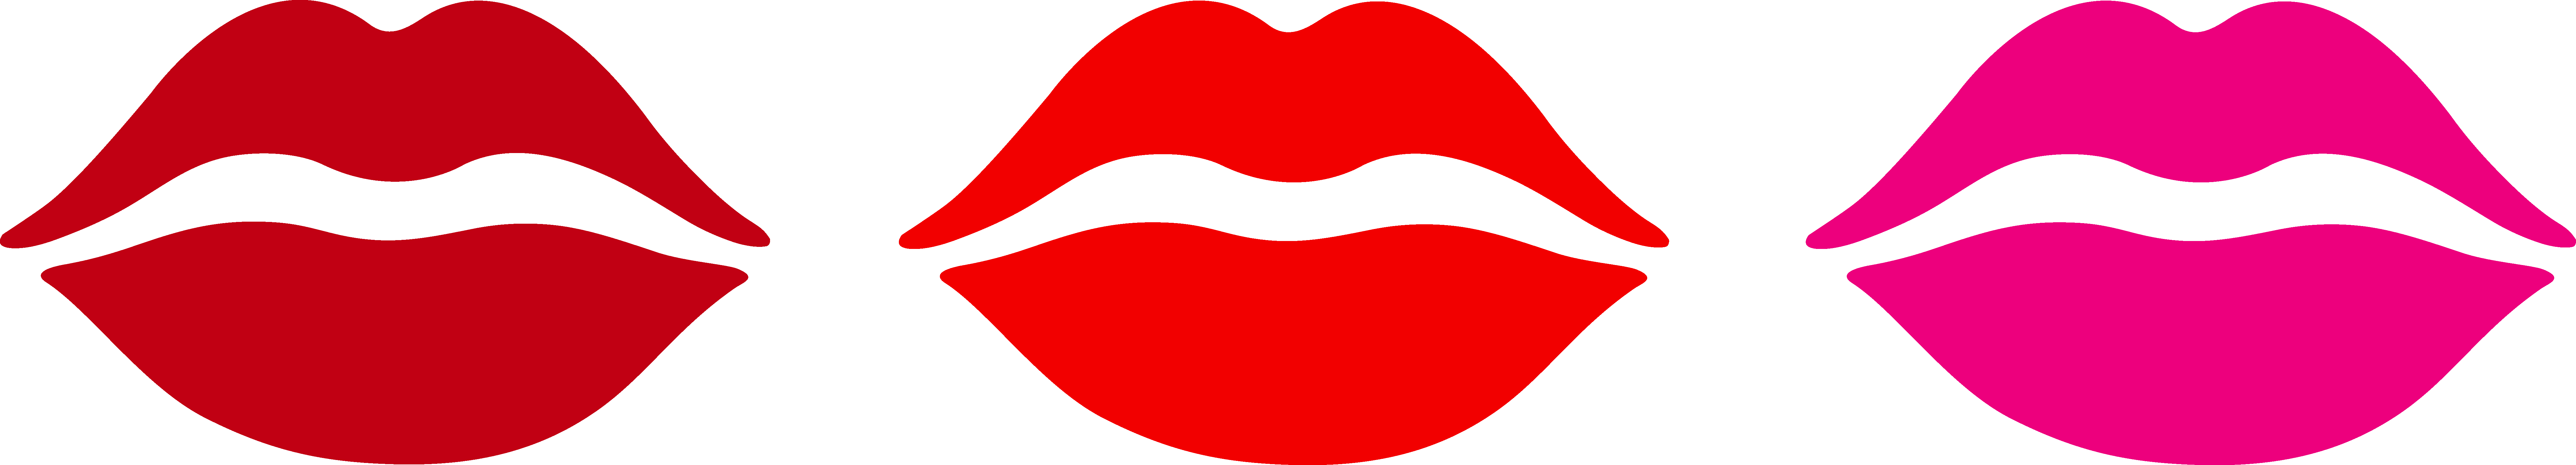 Kisses clipart clip free download Free Red Lipstick Cliparts, Download Free Clip Art, Free Clip Art on ... clip free download